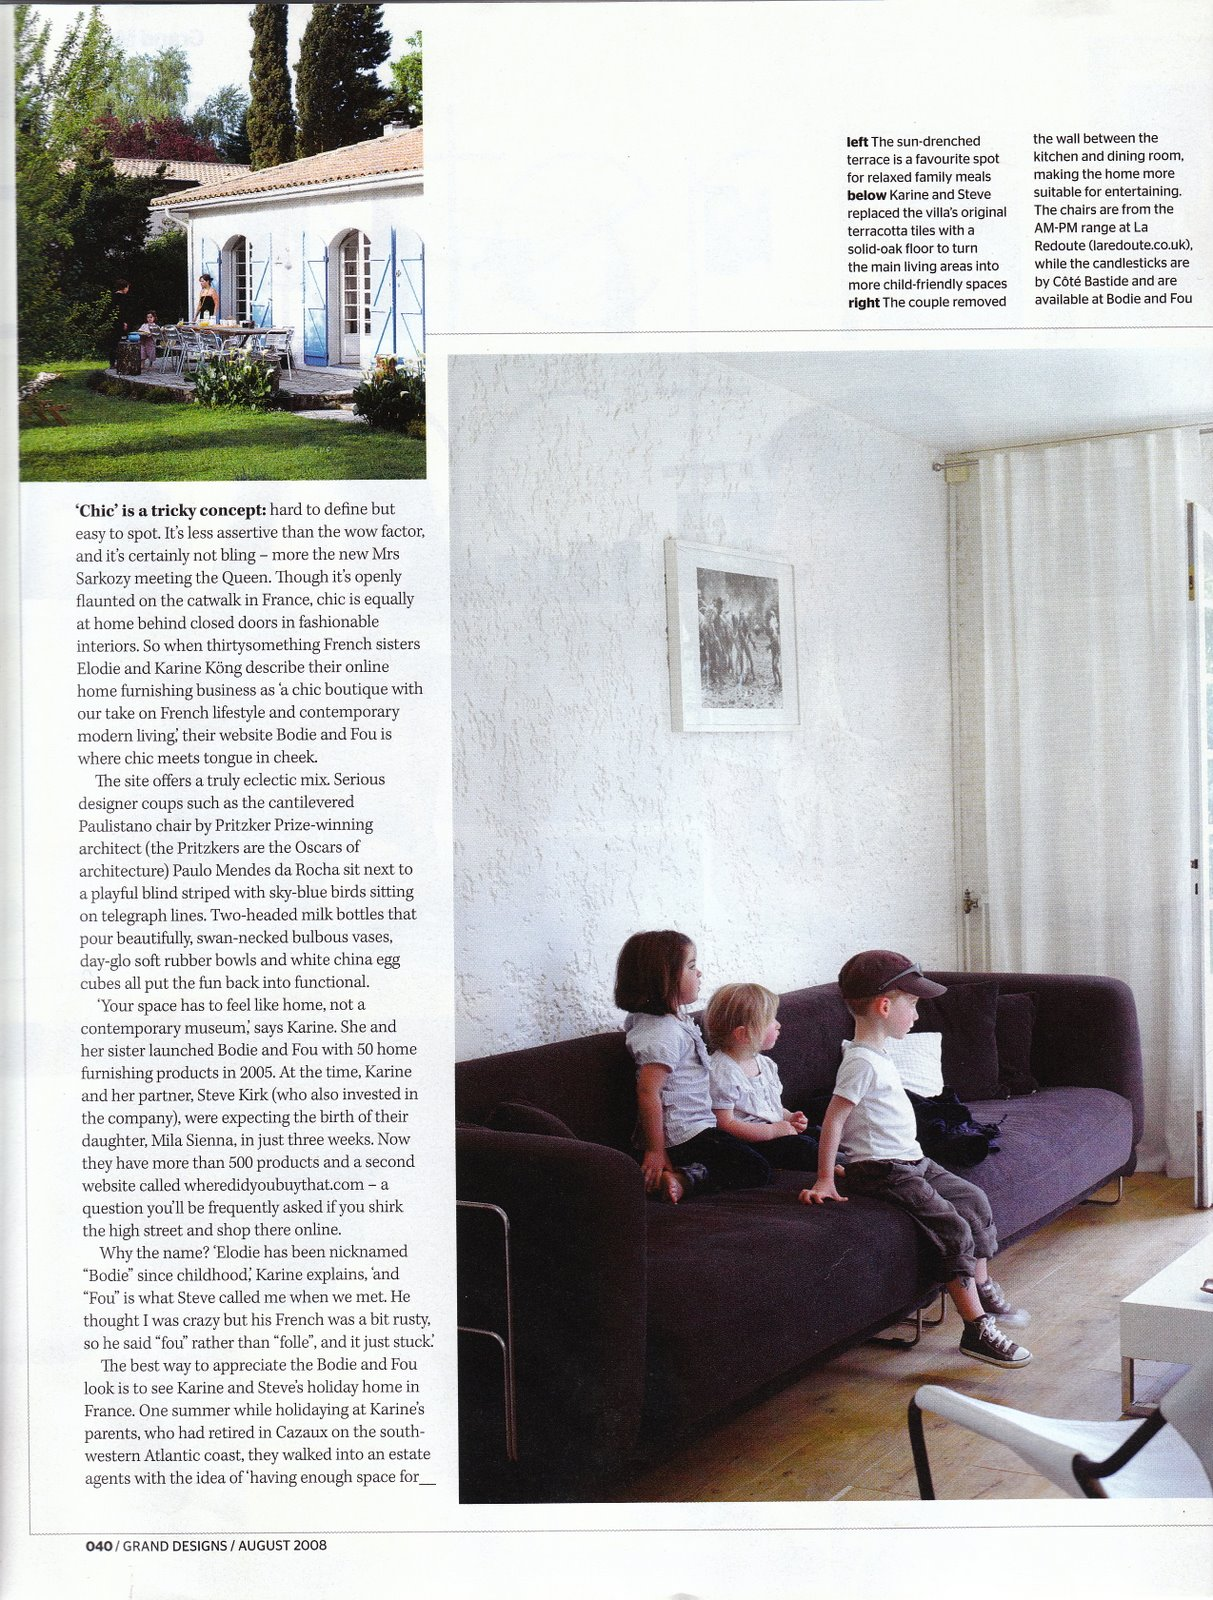 Our French home in Grand Designs magazine, July 2008